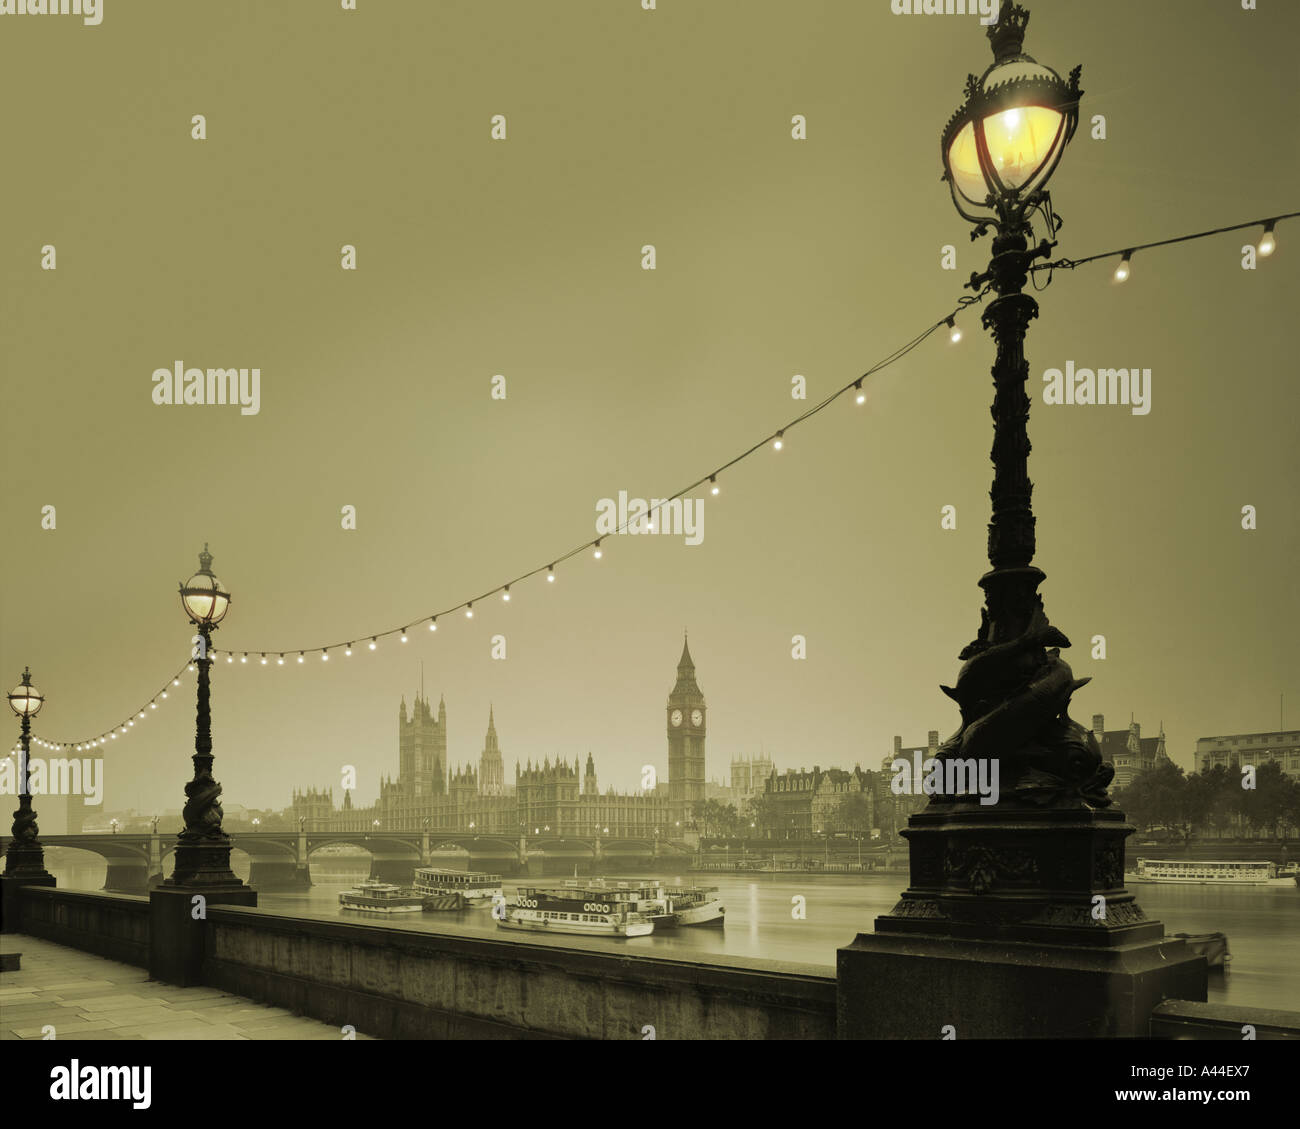 GB - LONDON:  Westminster and River Thames - Stock Image